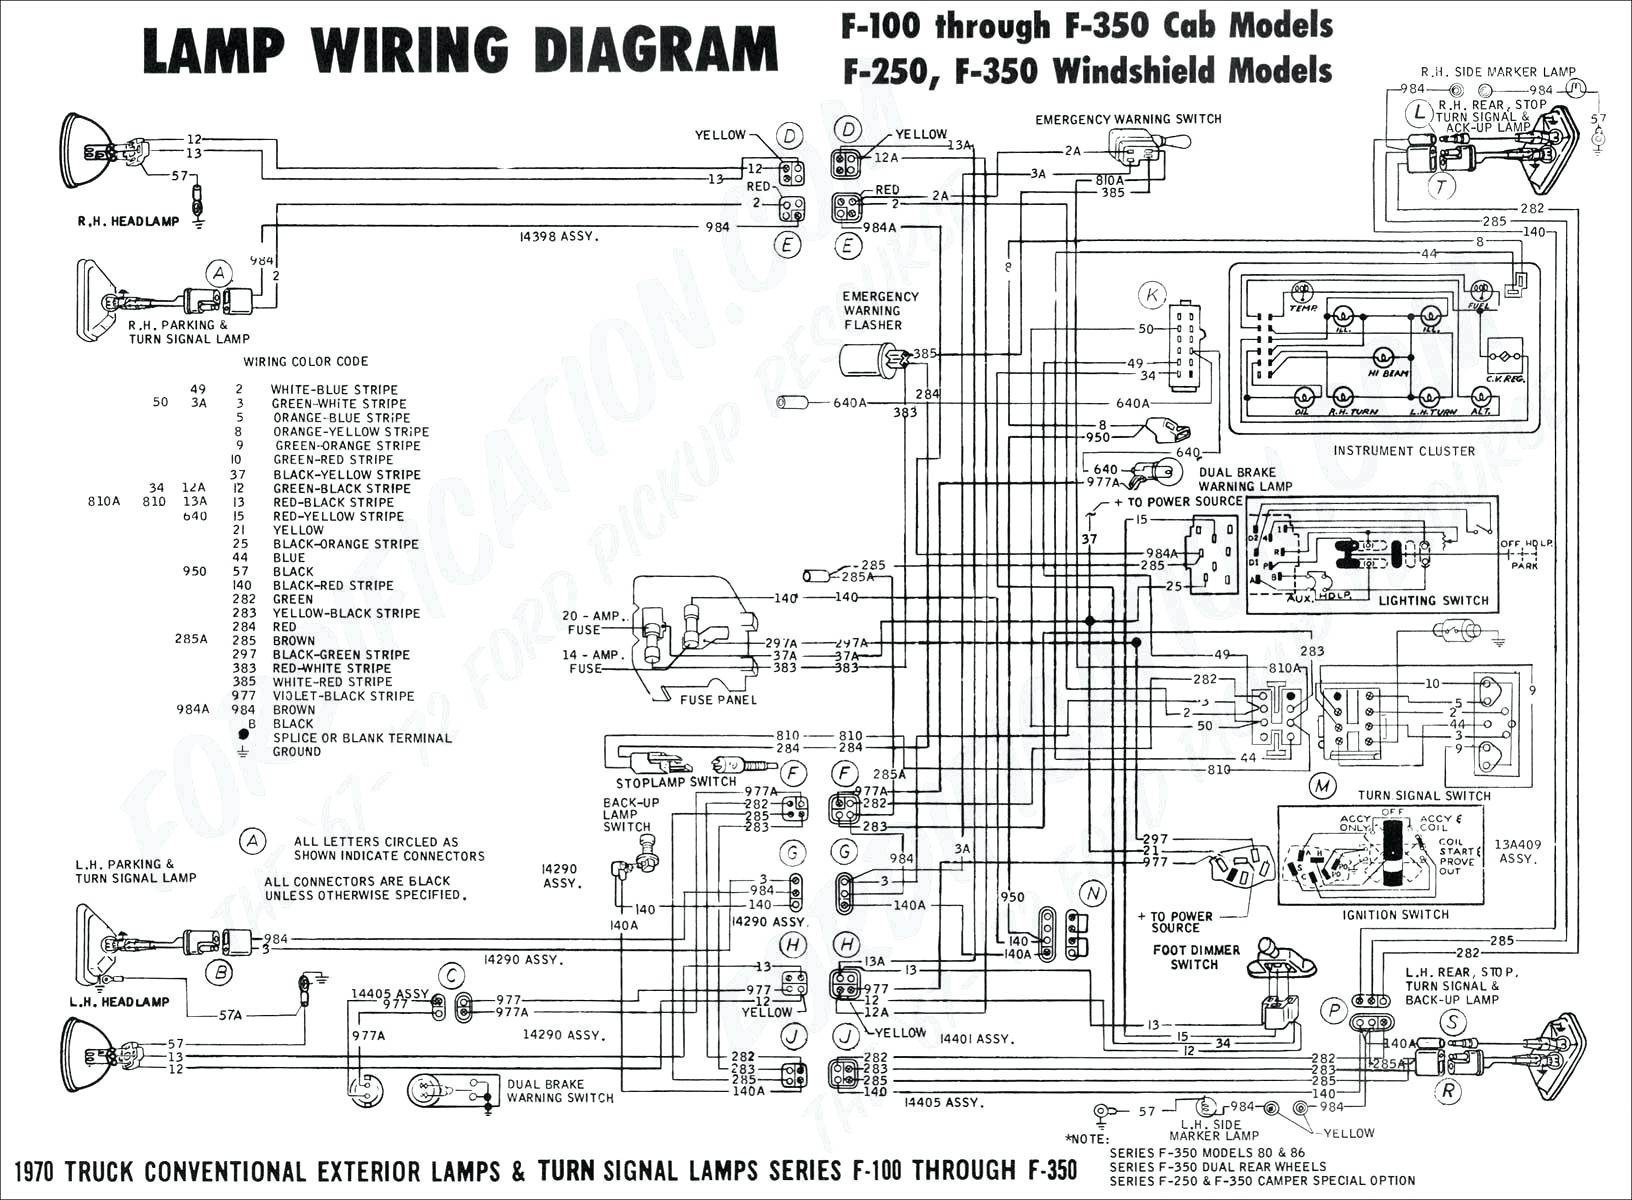 hight resolution of mitsubishi minicab u62t wiring diagram wiring library york air handler control board wiring diagrams york air handler wiring diagram model ahe36c3xh21a